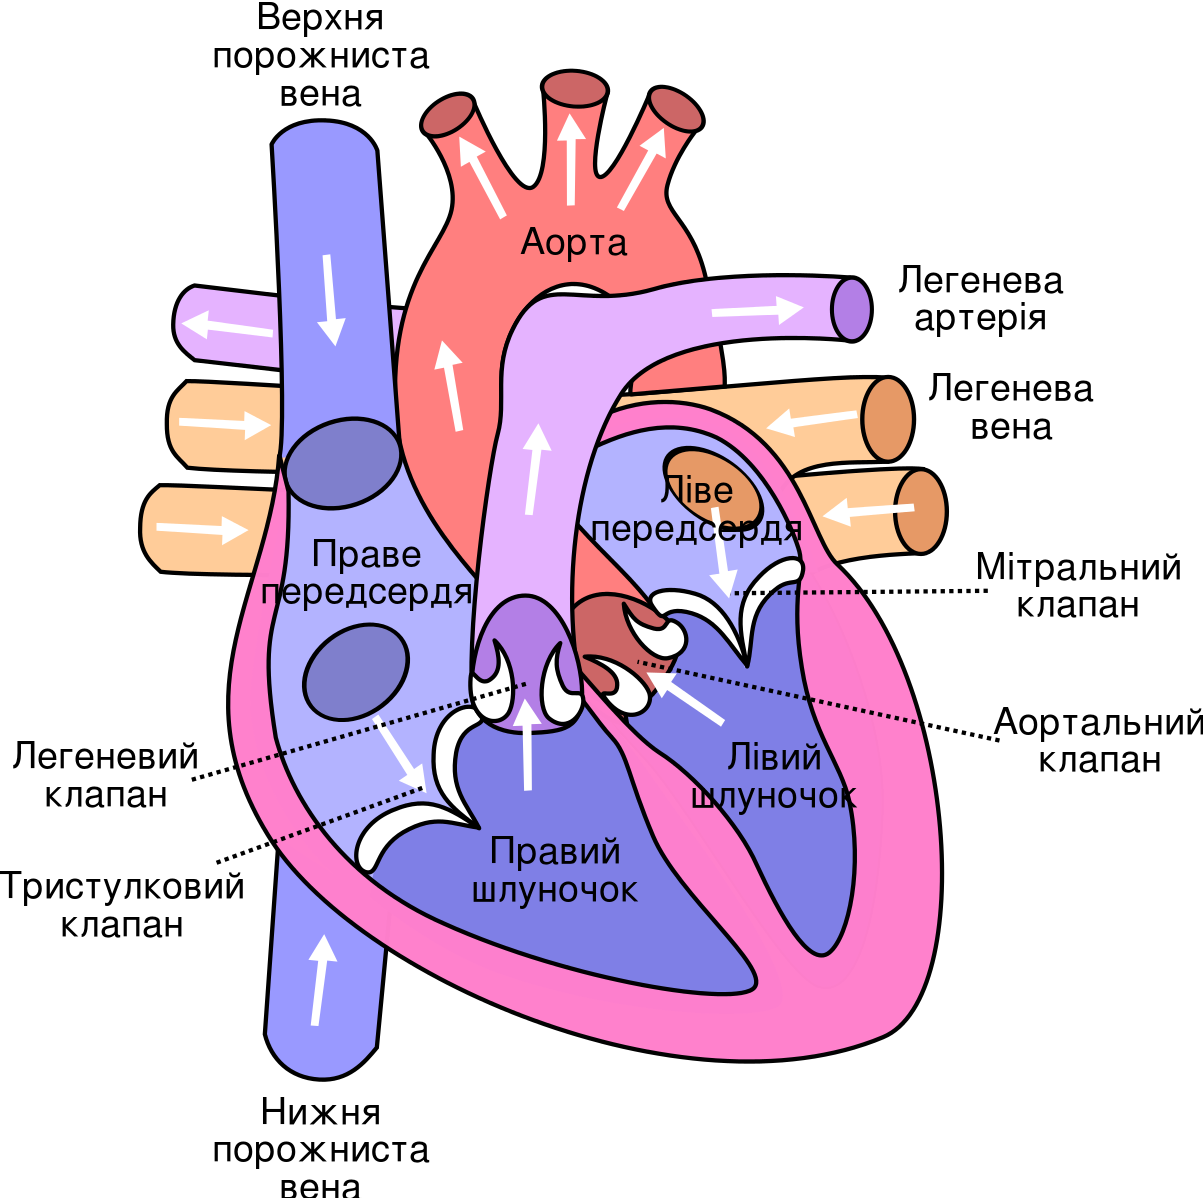 File Diagram Of The Human Heart Cropped Ukrainian Svg Human Anatomy And Physiology Human Heart Diagram Heart Diagram